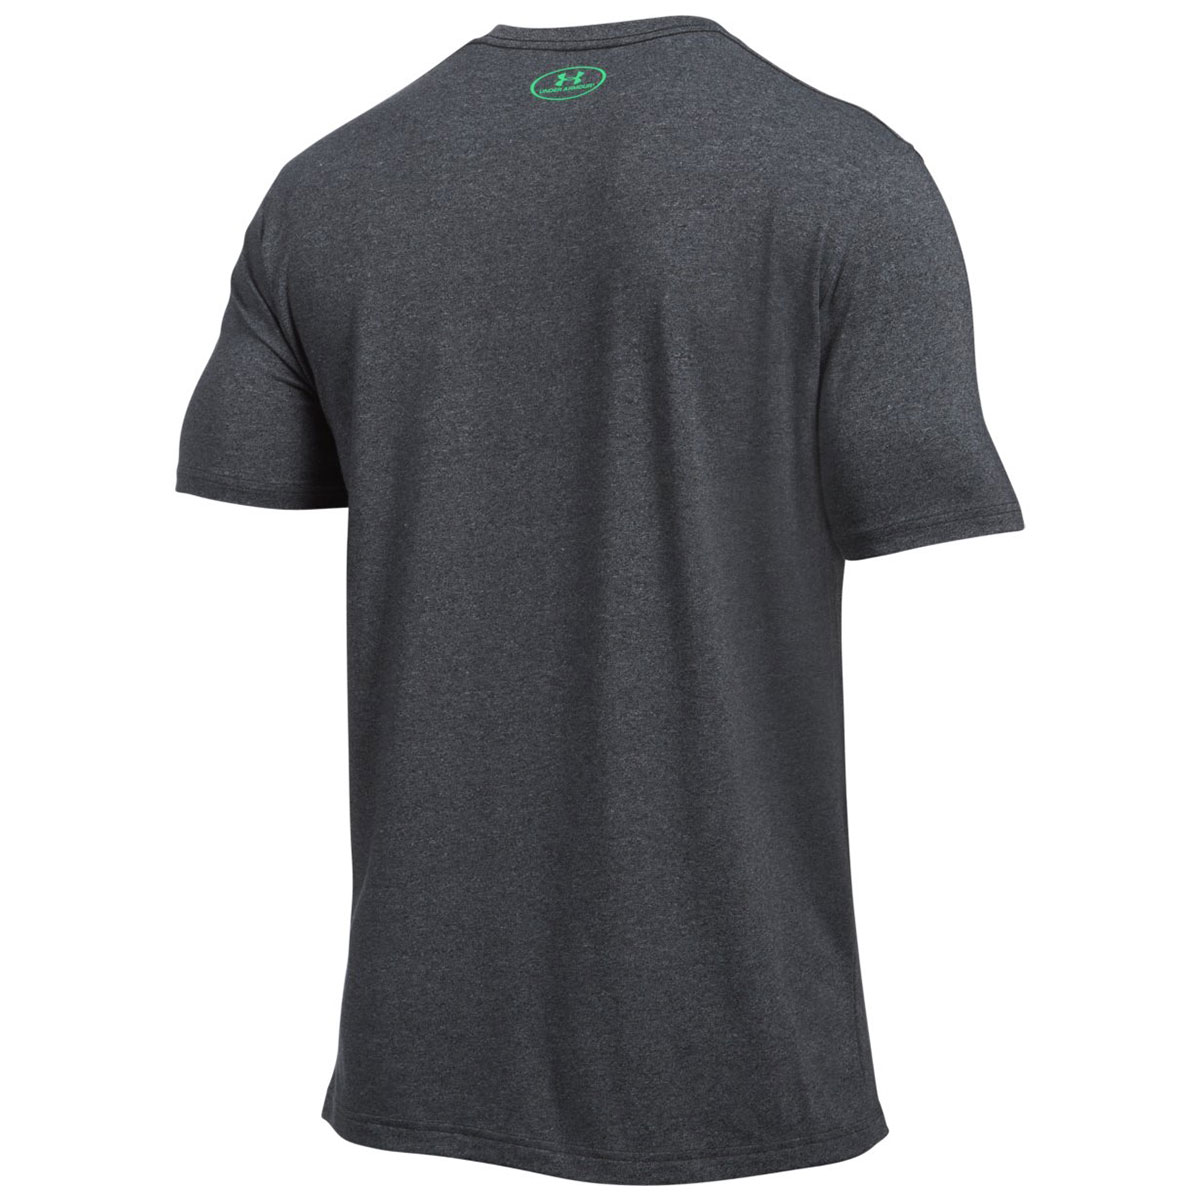 Under-Armour-Mens-Charged-Cotton-Left-Chest-Lockup-T-Shirt-UA-Gym-Training thumbnail 5